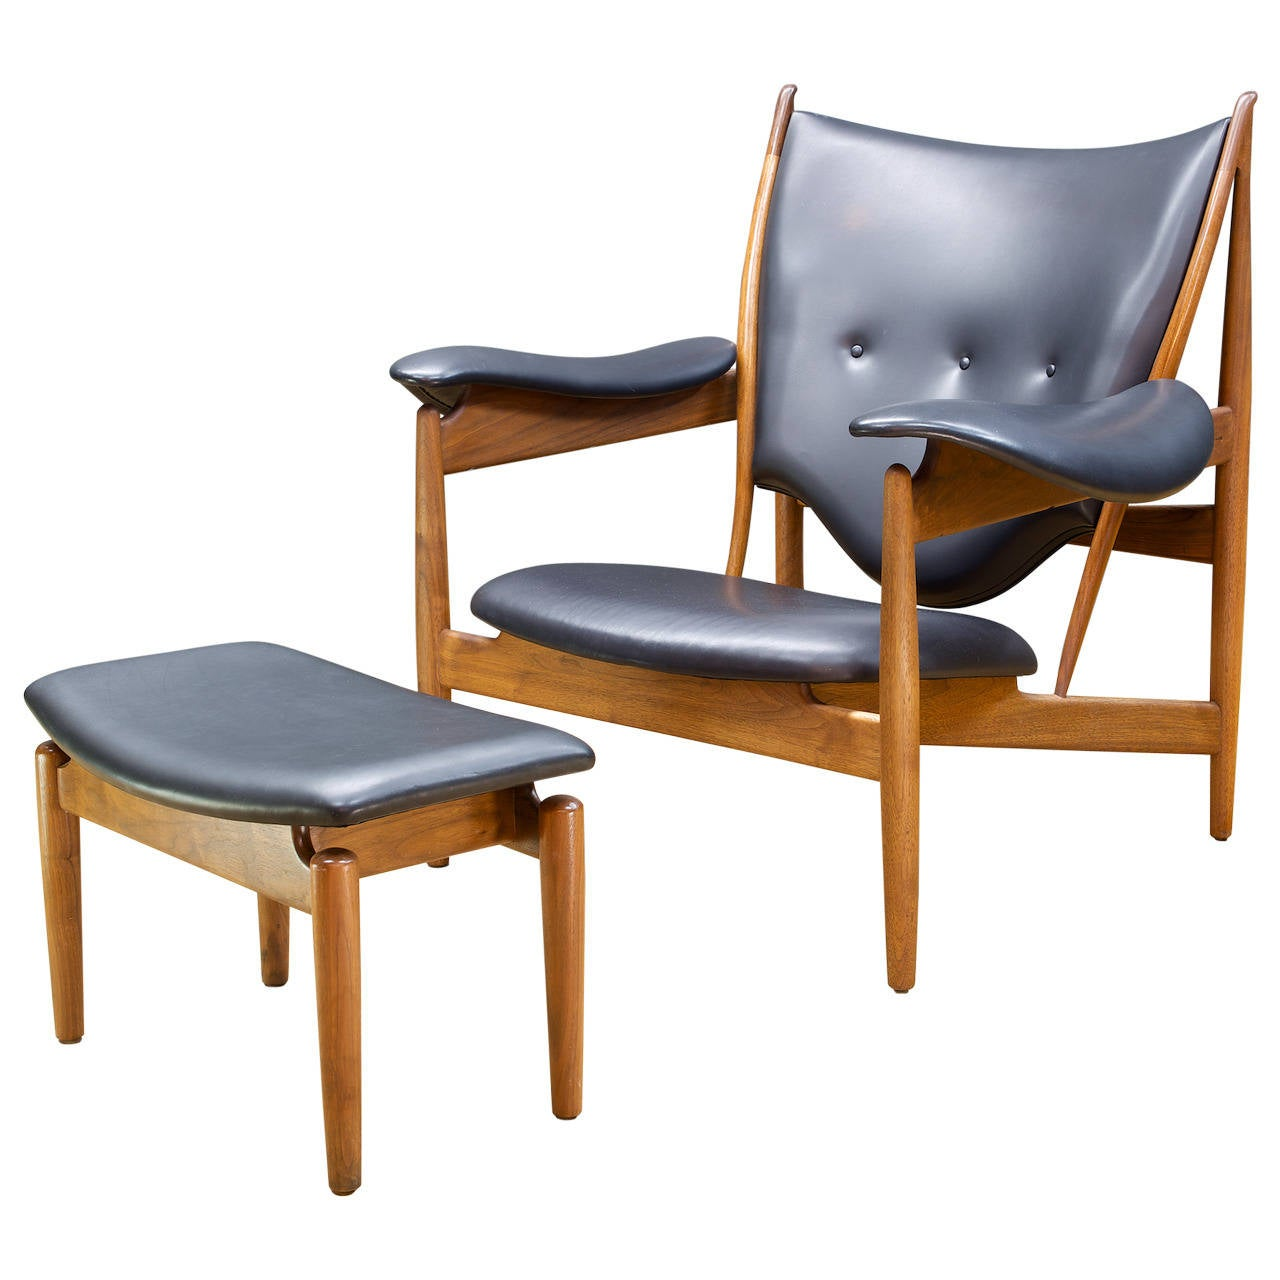 Finn Juhl Walnut Teak Chieftain Chair and Ottoman for Baker